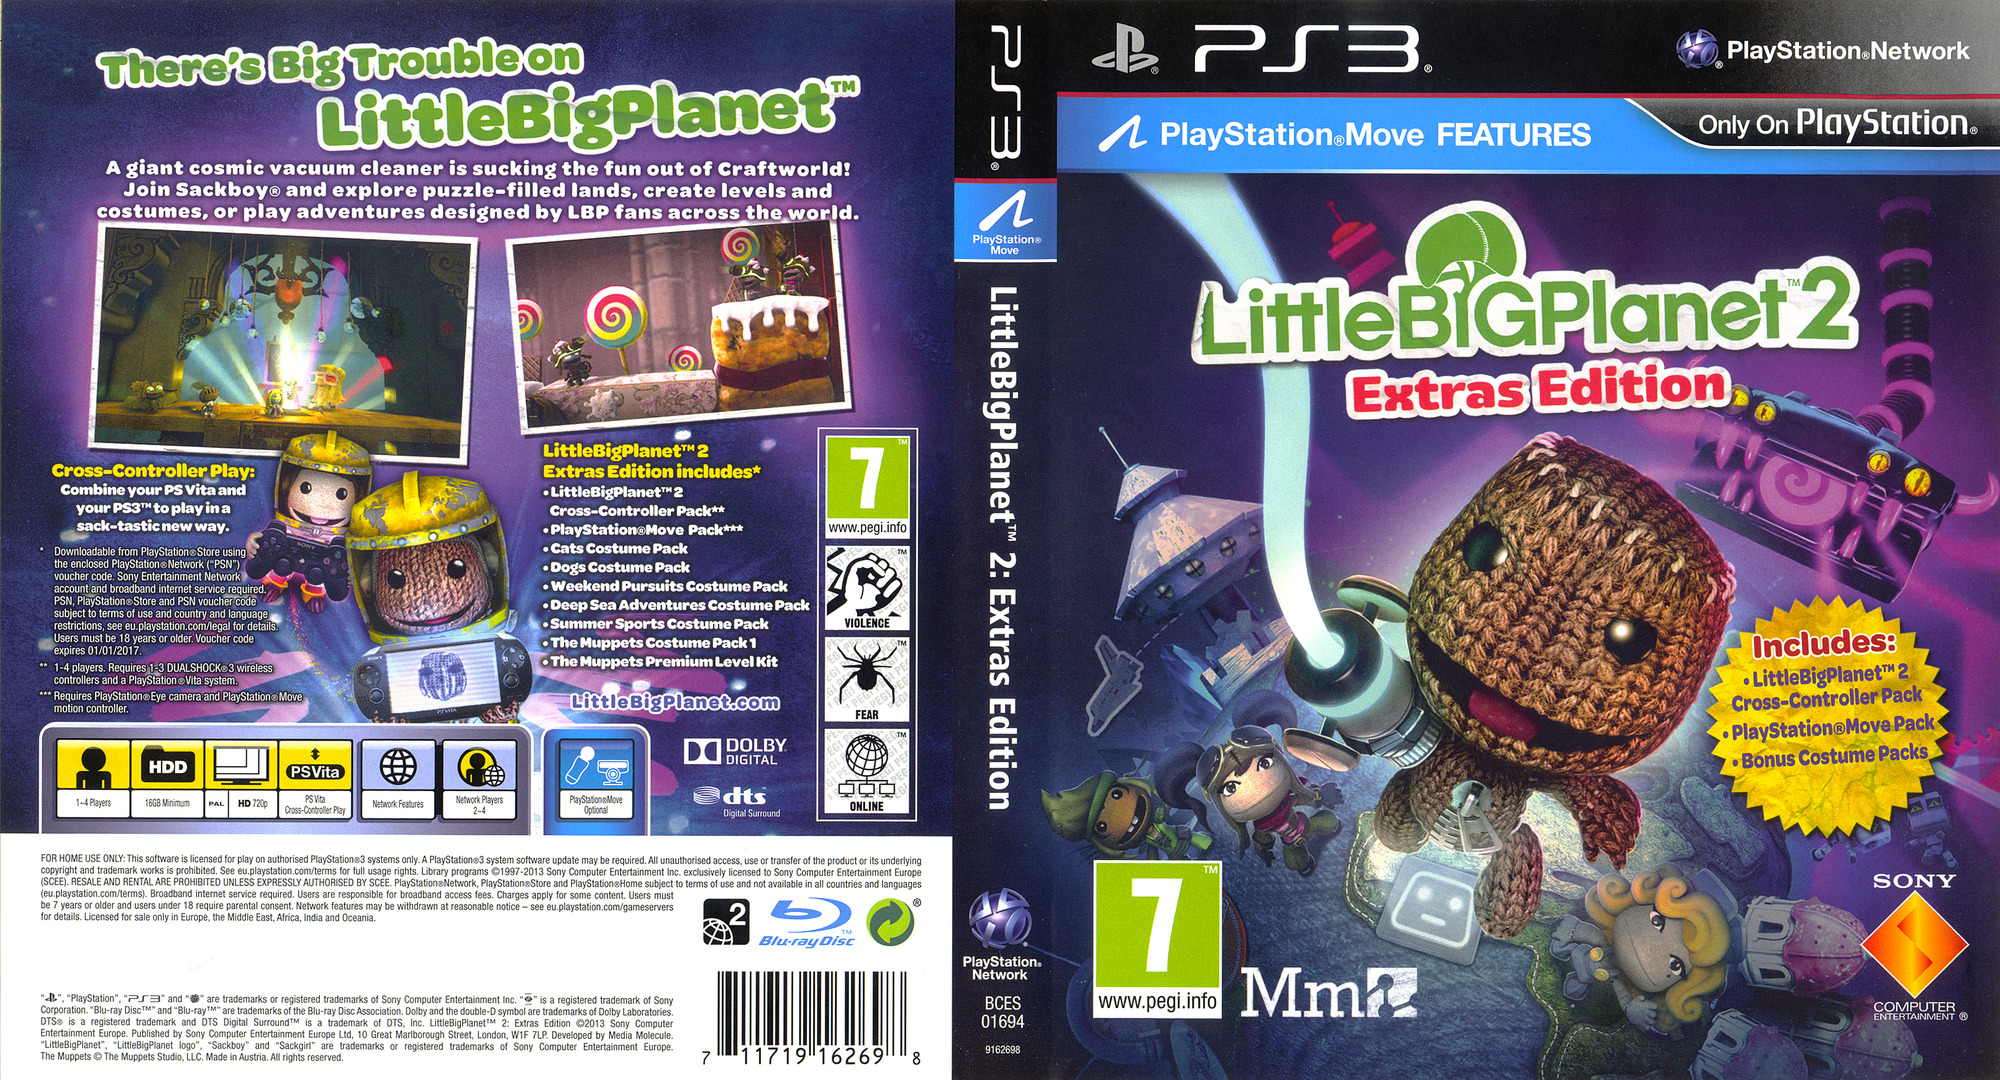 LittleBigPlanet 2 (Extras Edition) PS3 coverfullHQ (BCES01694)